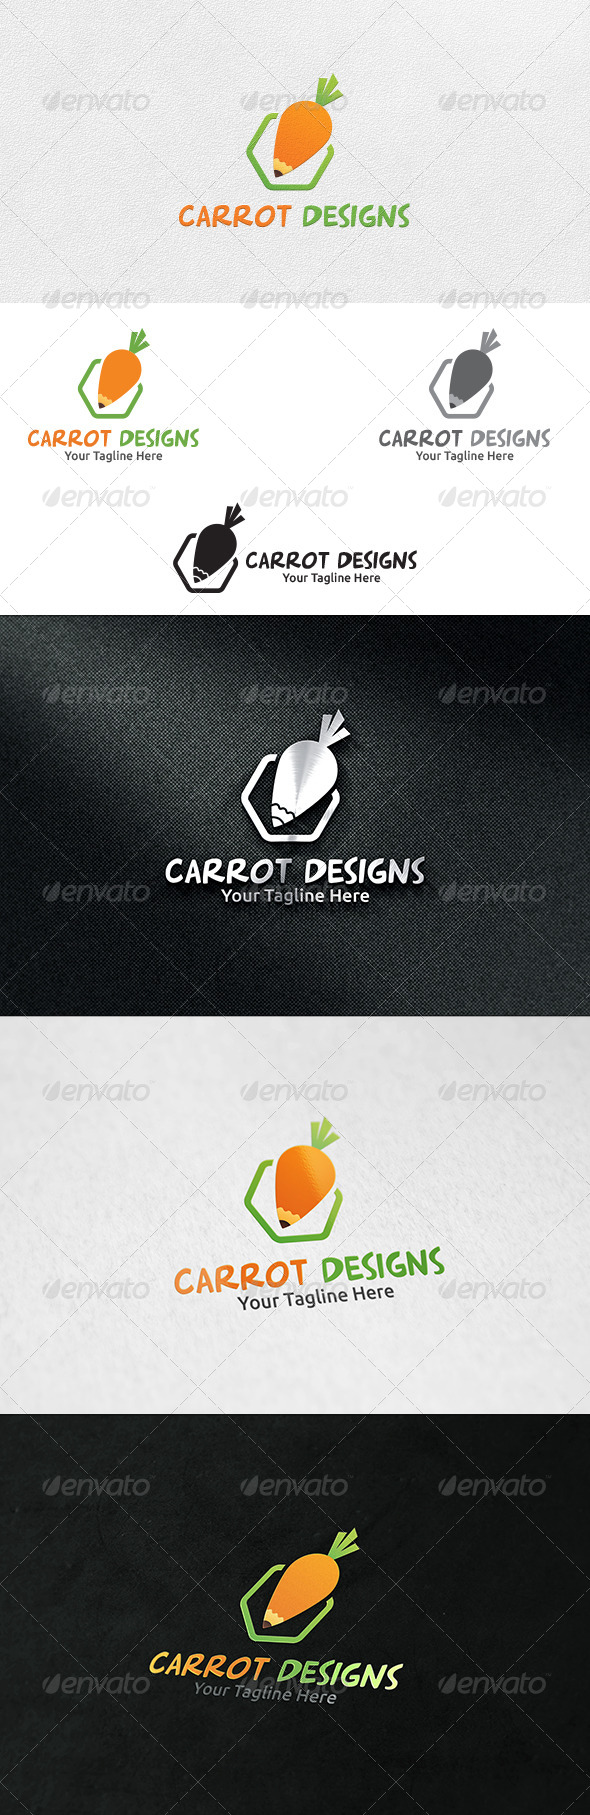 Carrot Designs - Logo Template - Nature Logo Templates